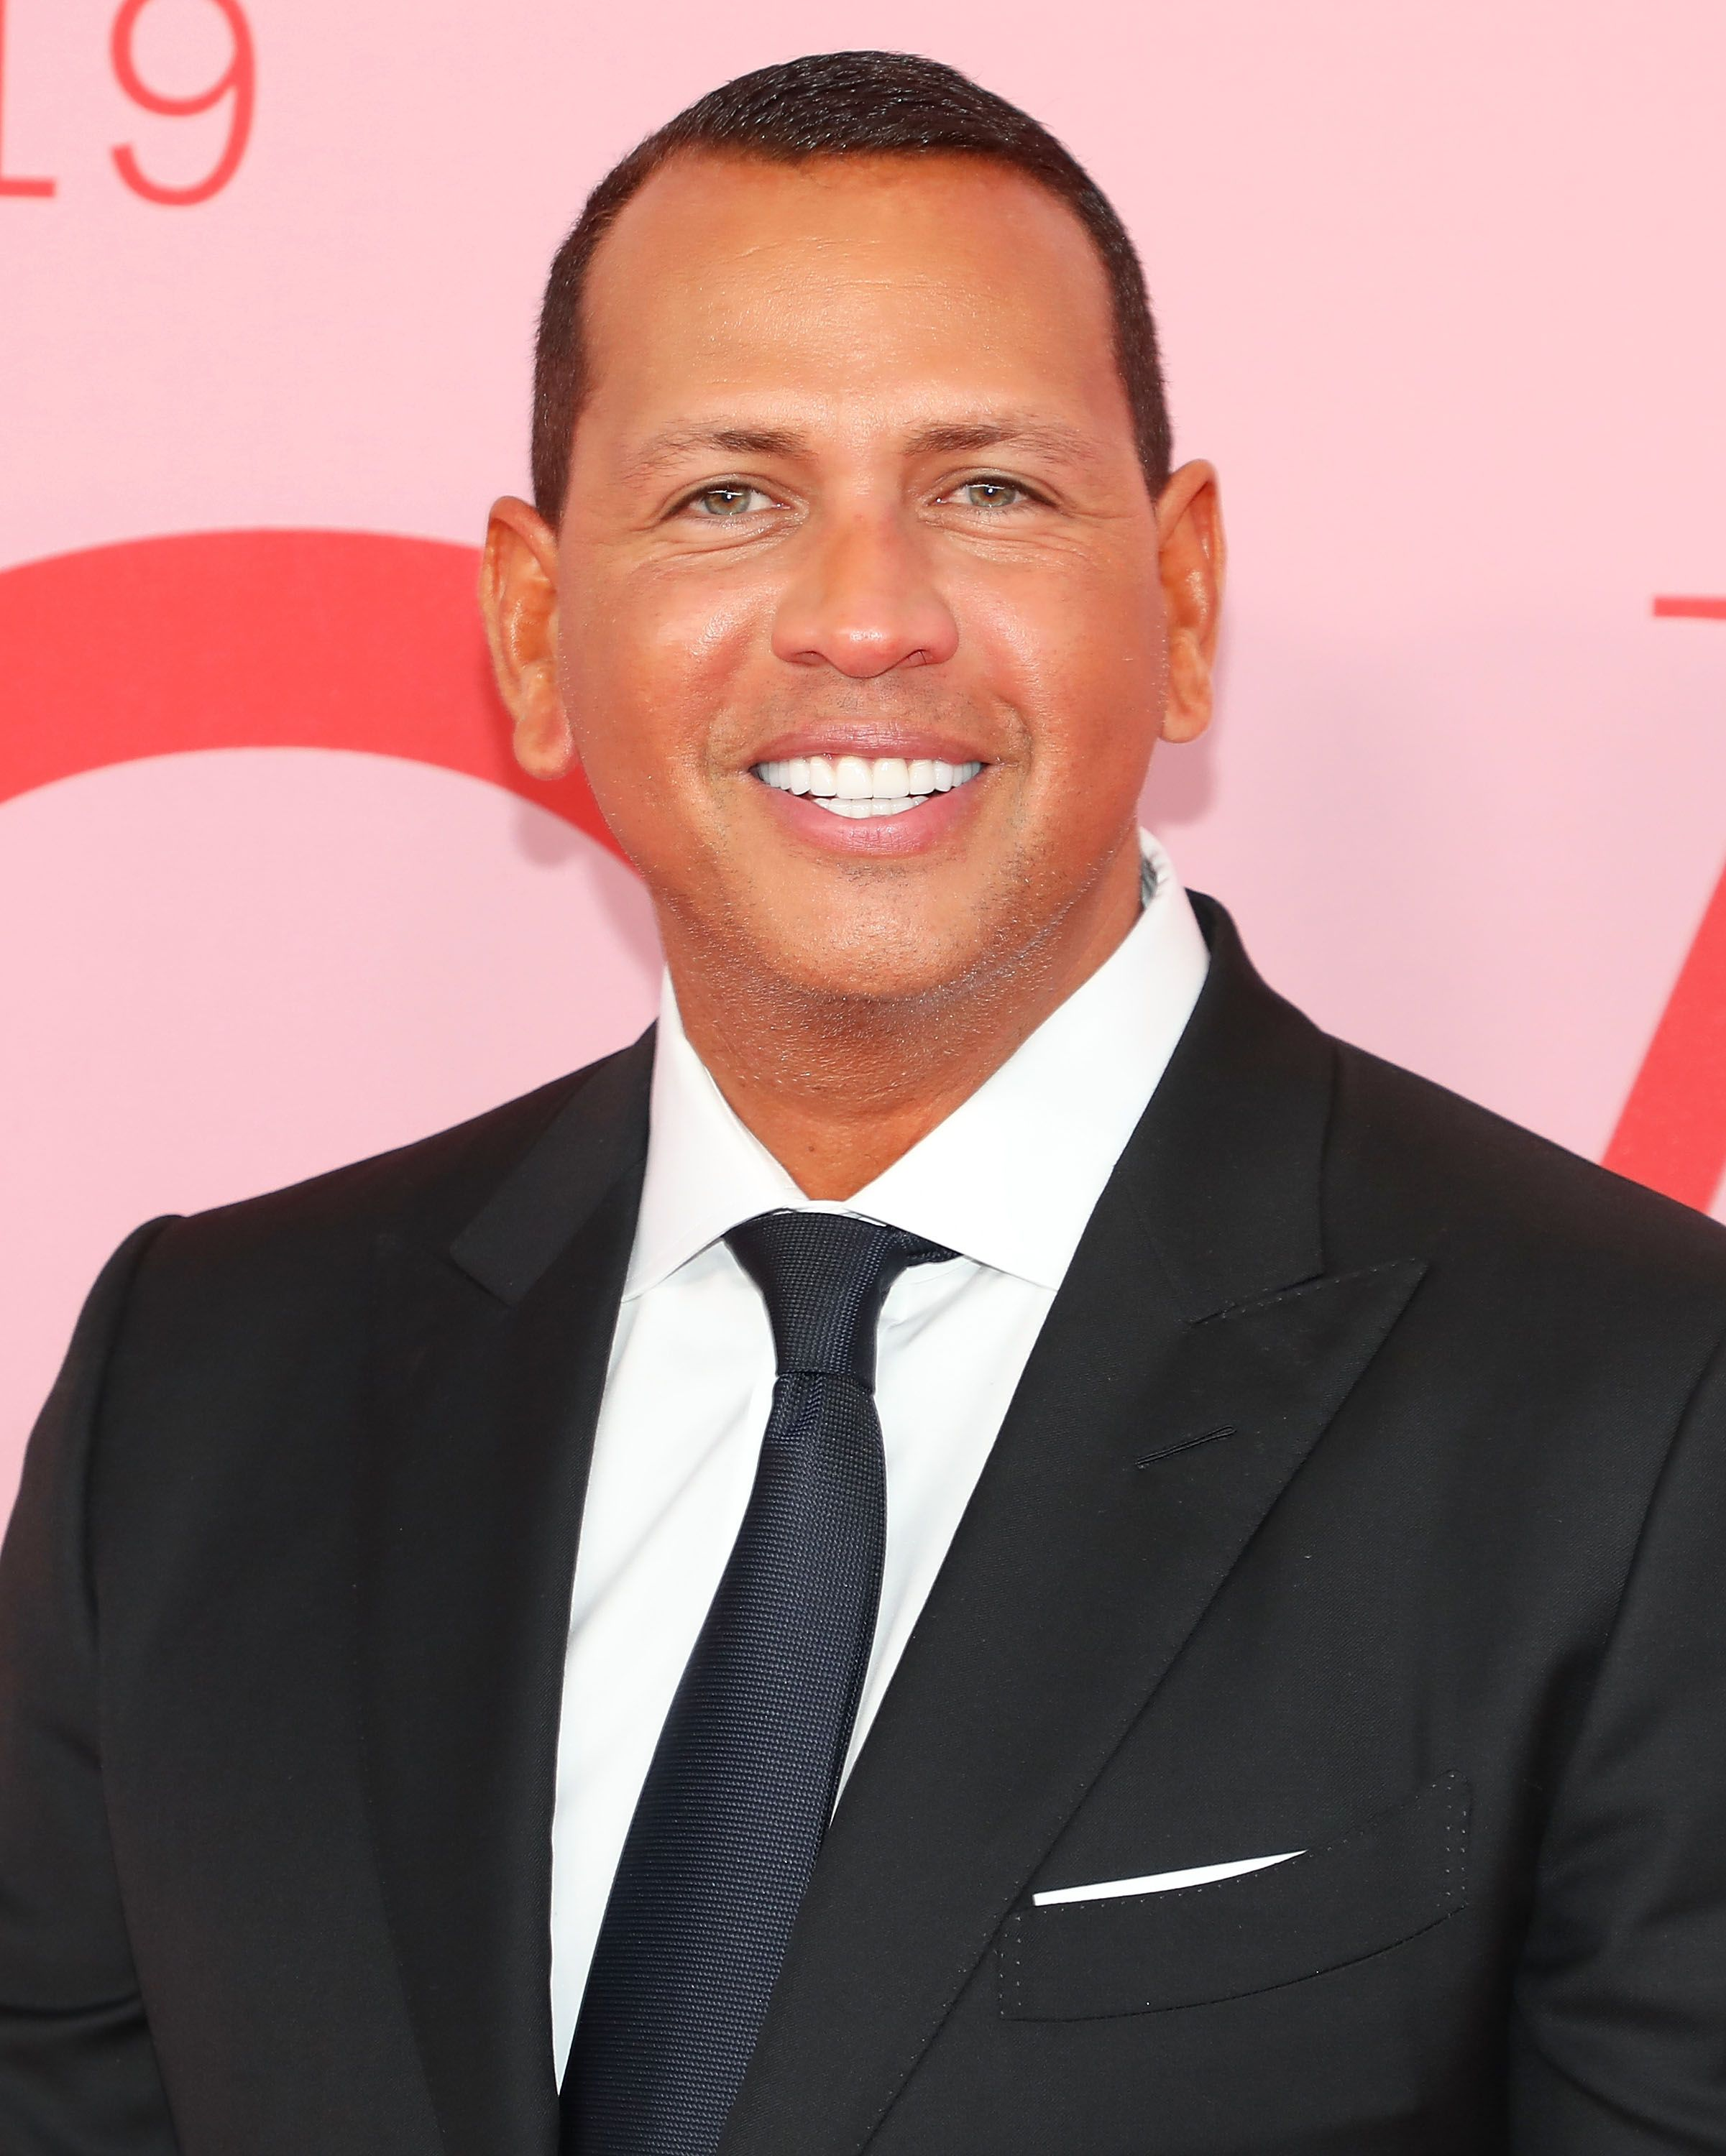 Alex Rodriguez Explained Why He Was Spotted With Ben Affleck's Ex, Lindsay Shookus